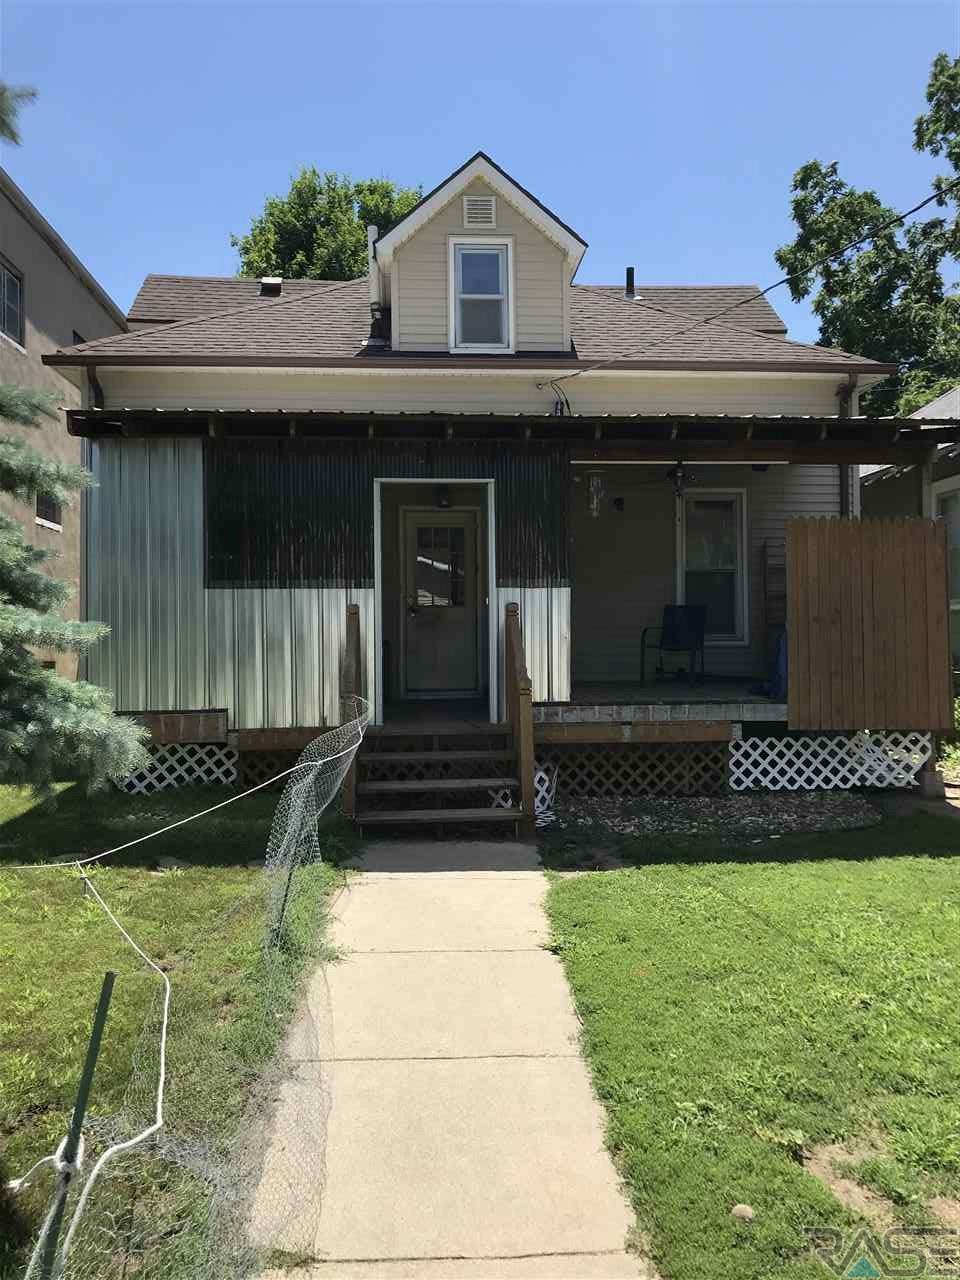 sd residential s property mls real sioux estate falls dubuque doors garage ave